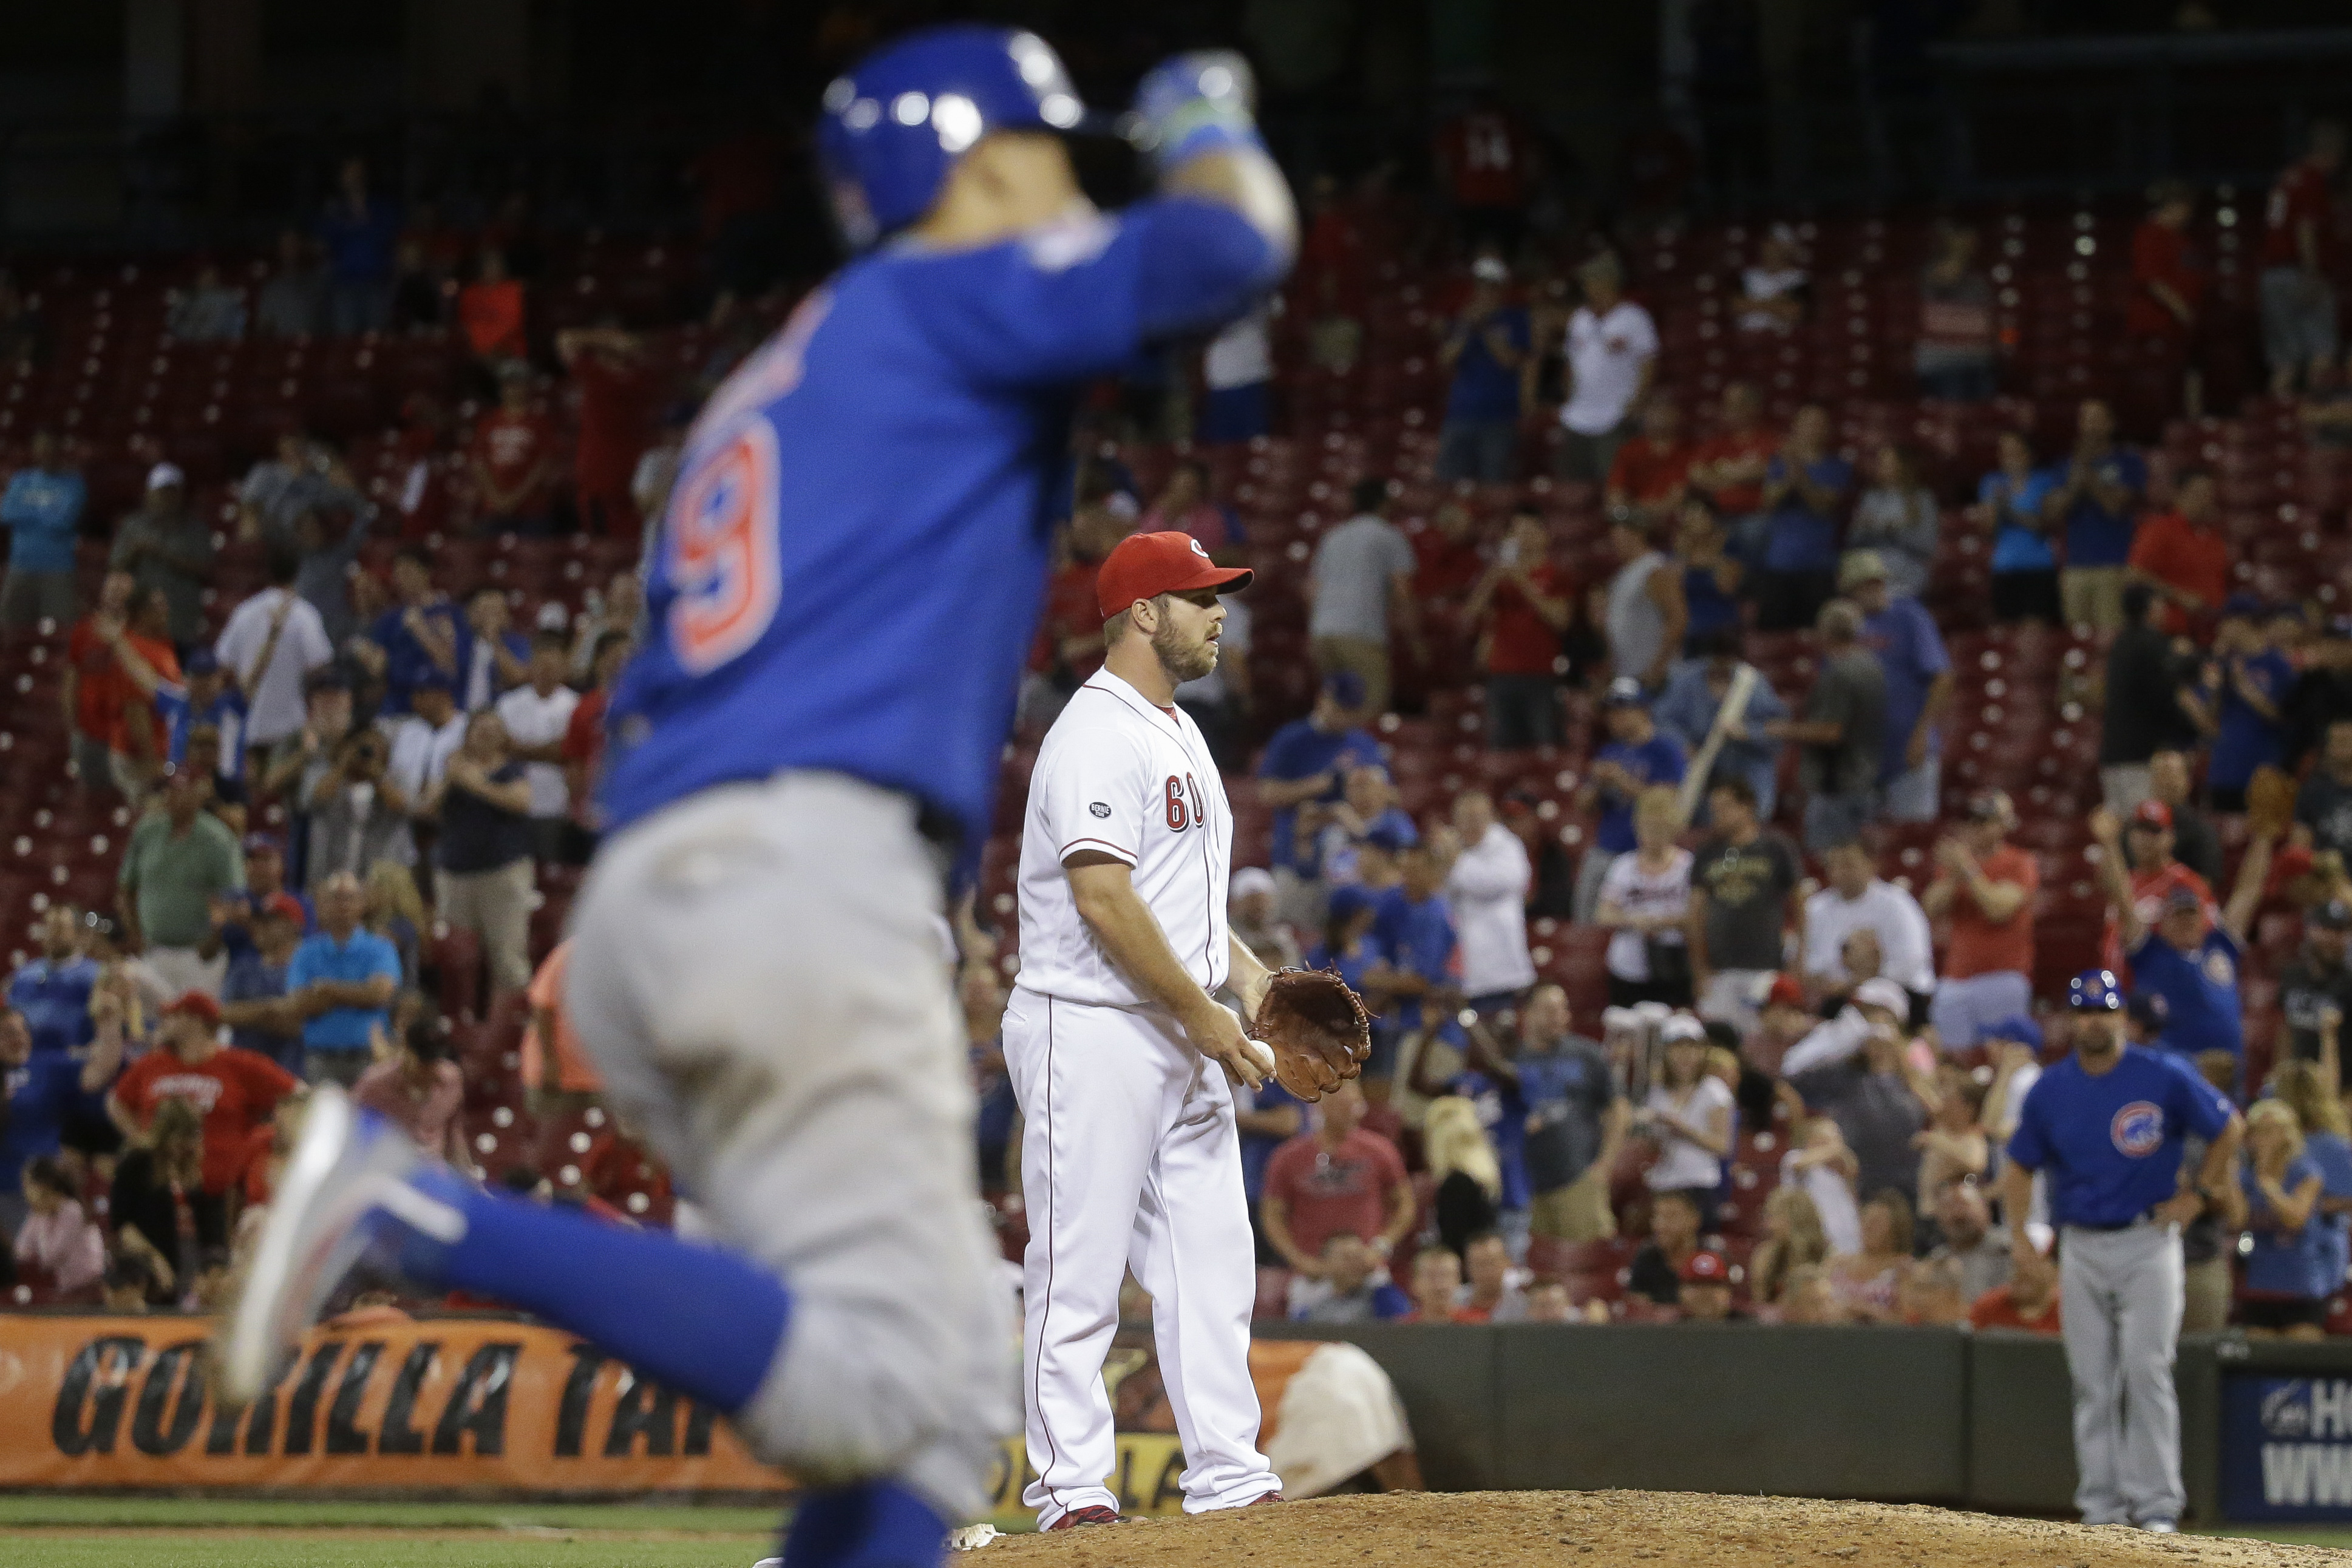 Cincinnati Reds relief pitcher J.J. Hoover stands on the mound as Chicago Cubs' Javier Baez (9) runs the bases on a grand slam in the 15th inning of a baseball game, Tuesday, June 28, 2016, in Cincinnati. The Cubs won 7-2. (AP Photo/John Minchillo)